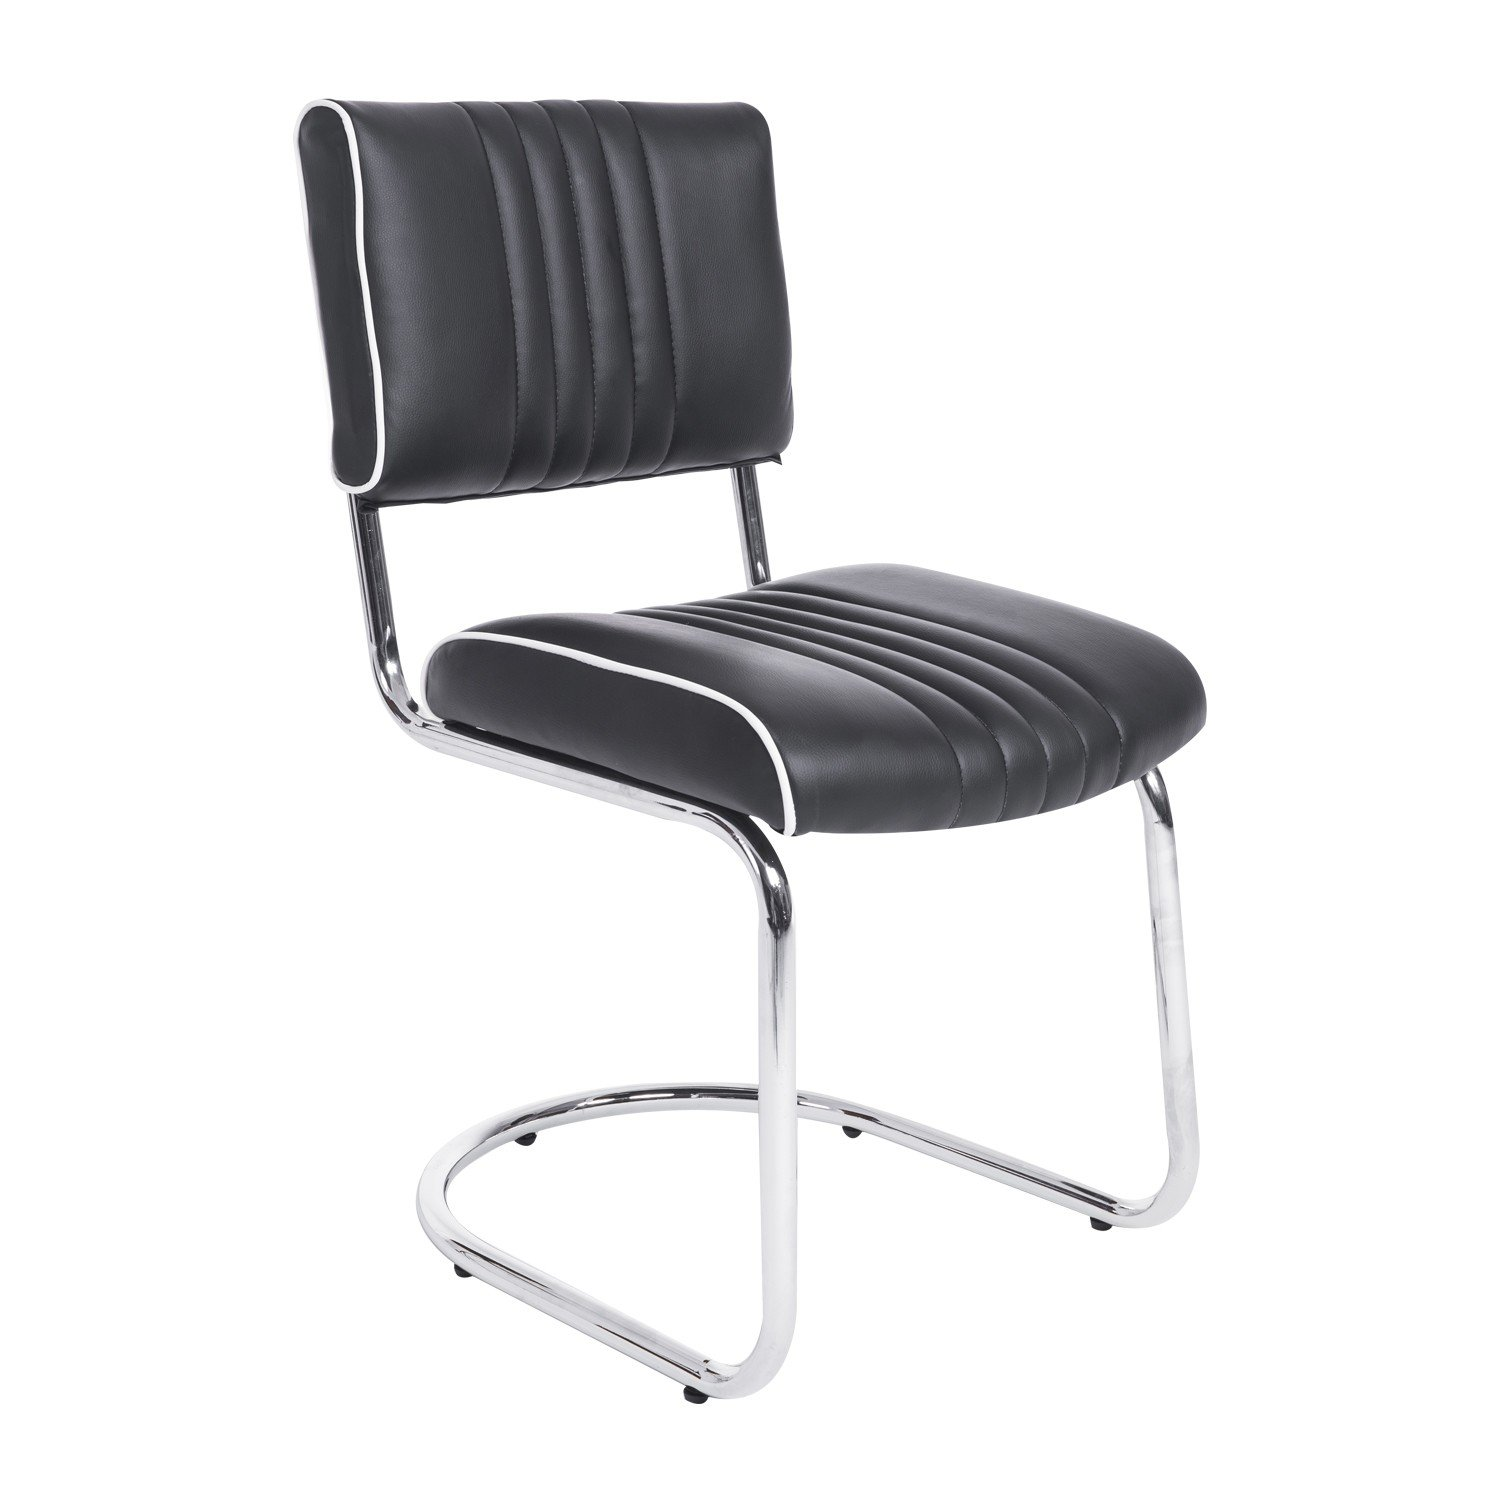 2 Pcs Stainless Steel Amp Pu Leather Dining Chairs Black